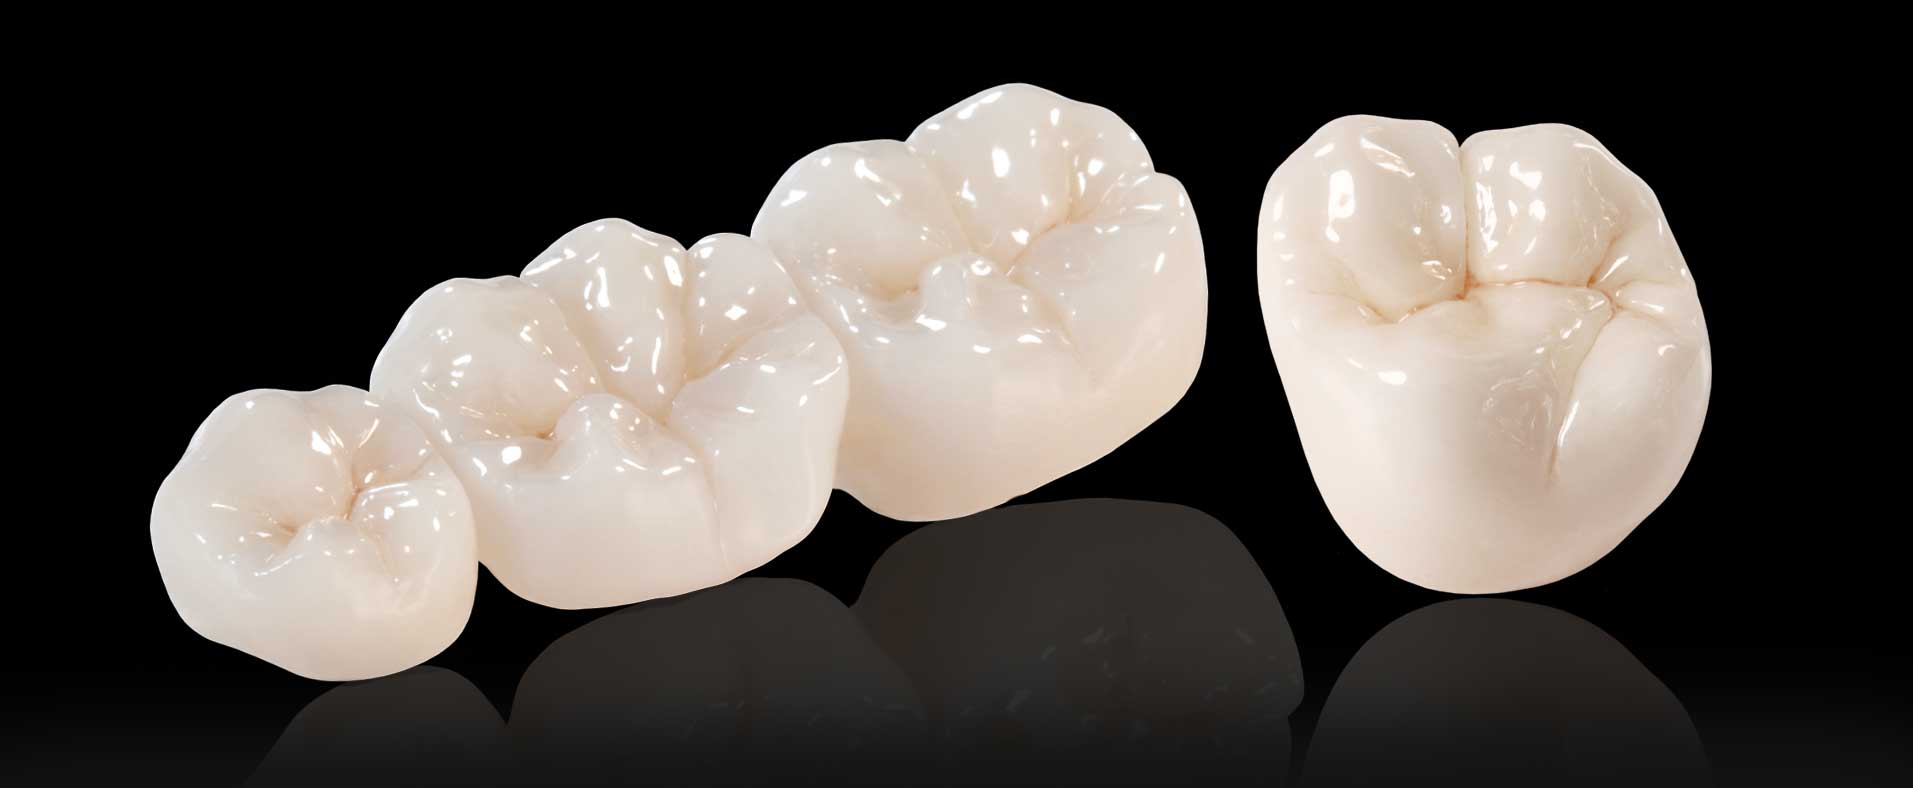 Our dental crowns and bridges